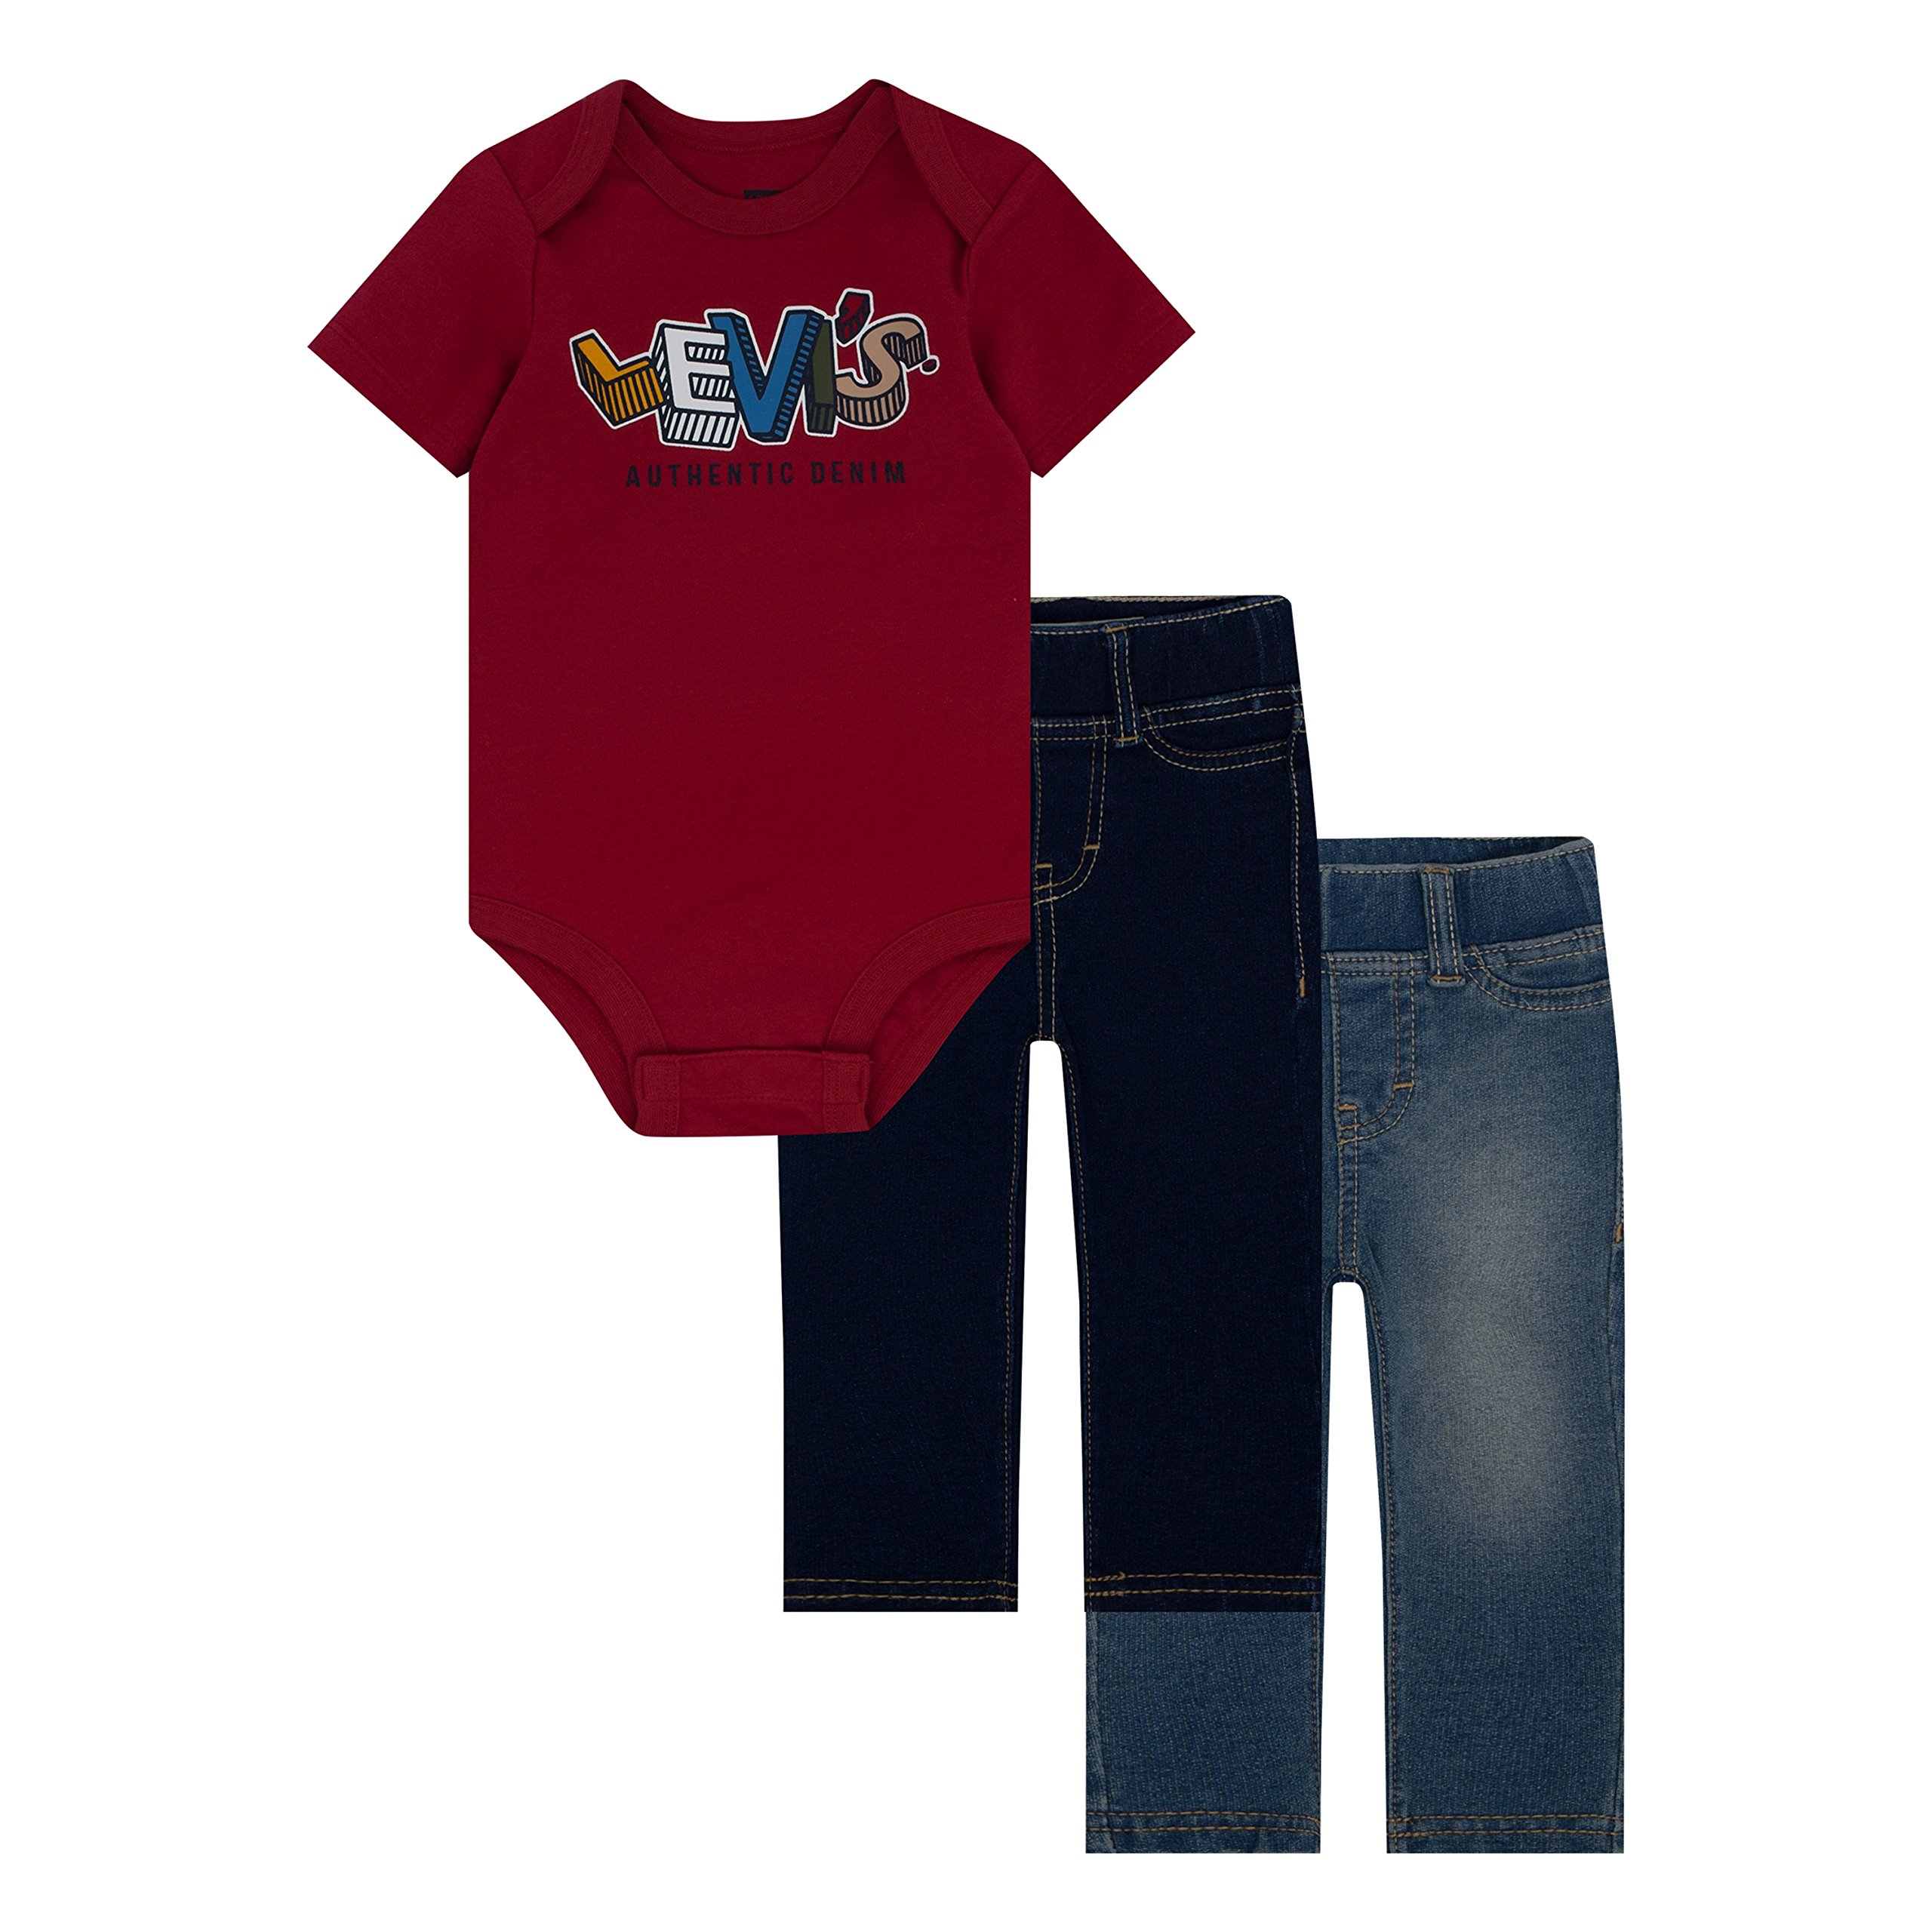 Levi's Baby Boys' First 3-Piece Bodysuit and Leggings Gift Set, Chili Pepper, 12M by Levi's